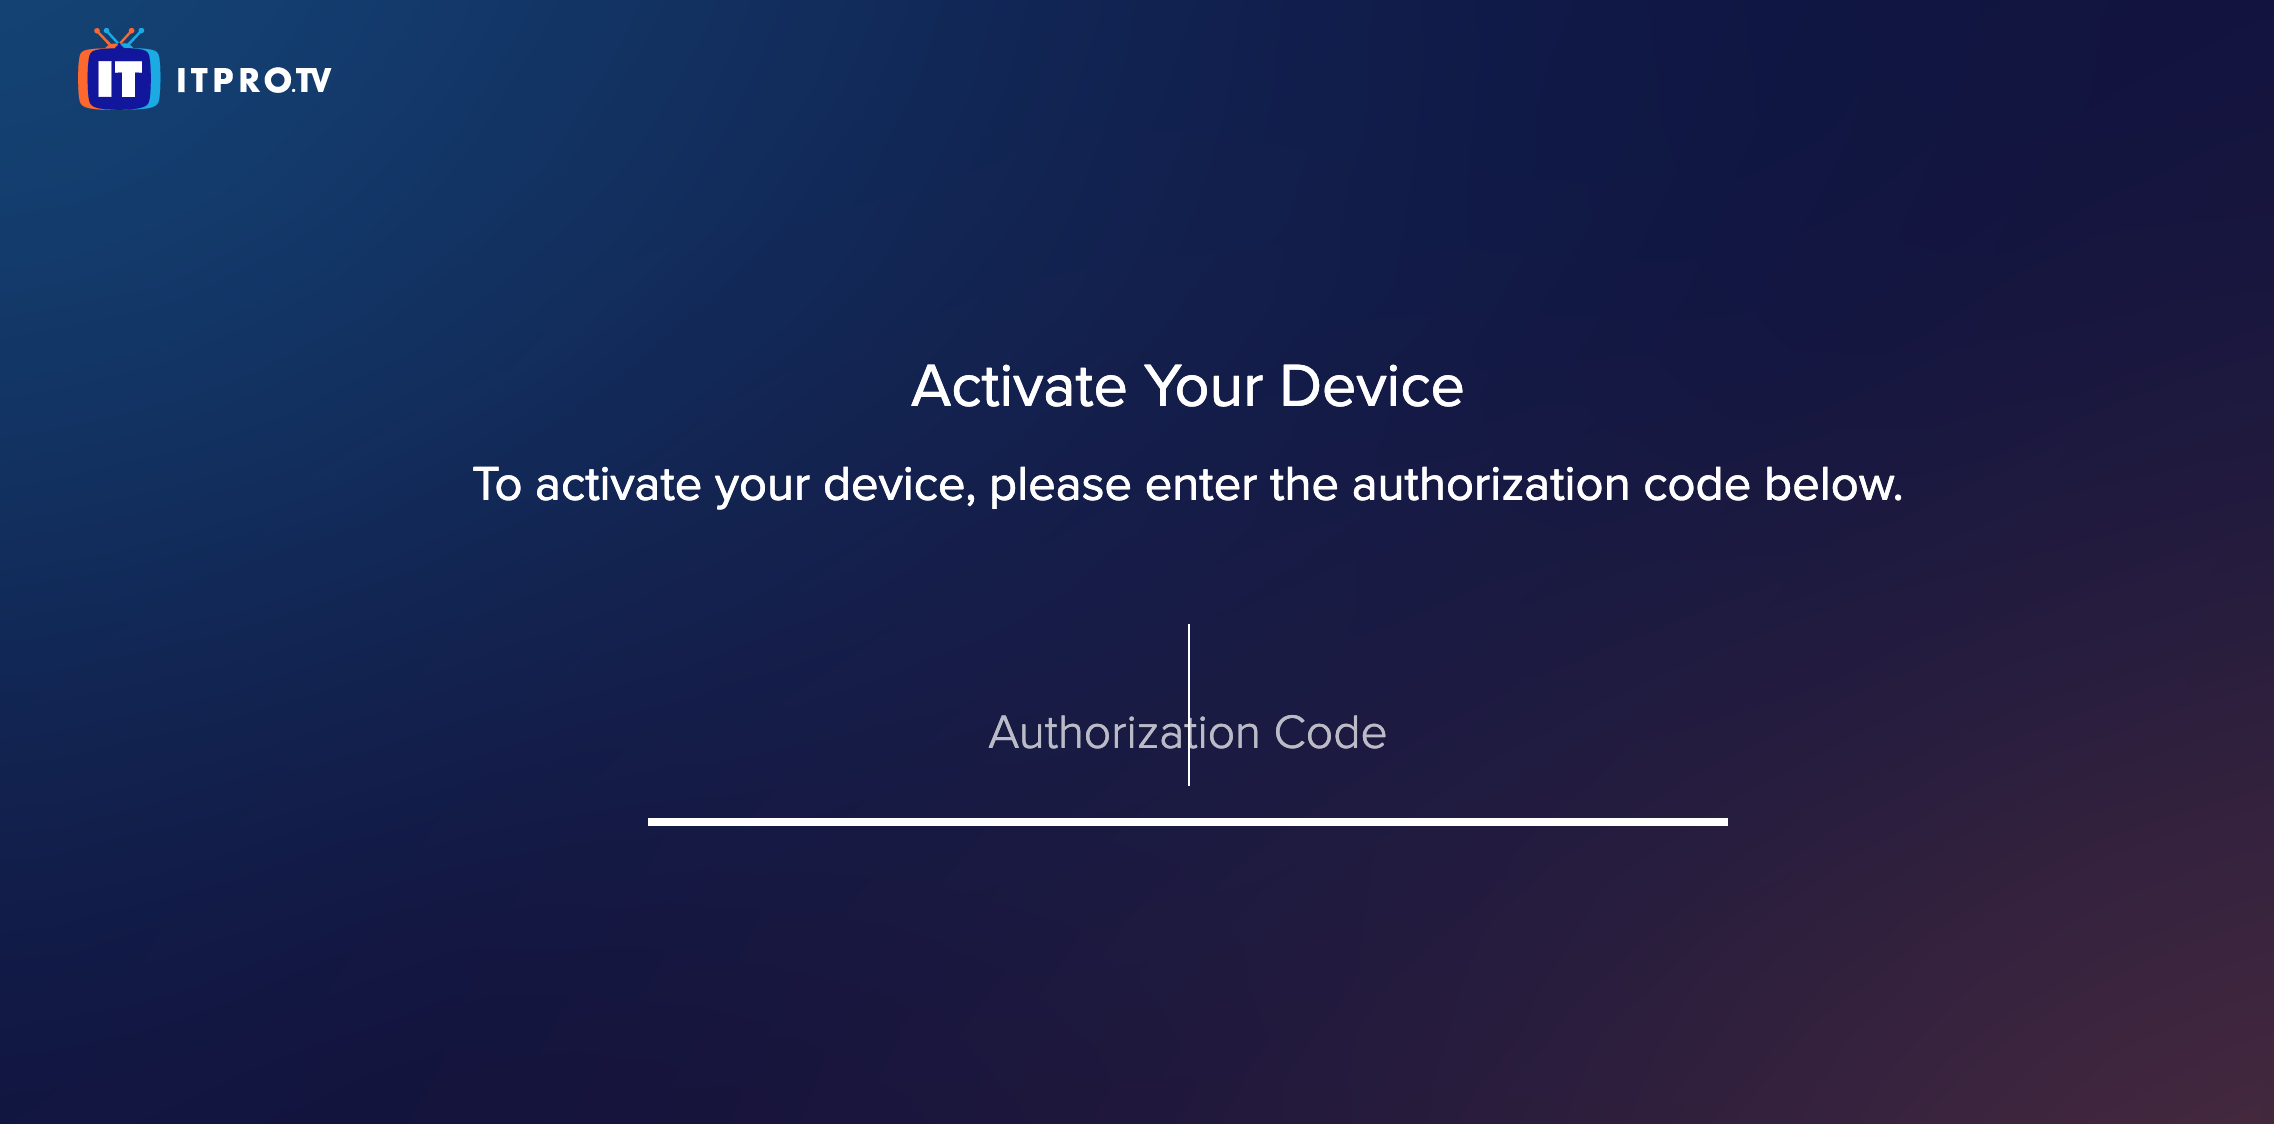 the ITProTV activation page